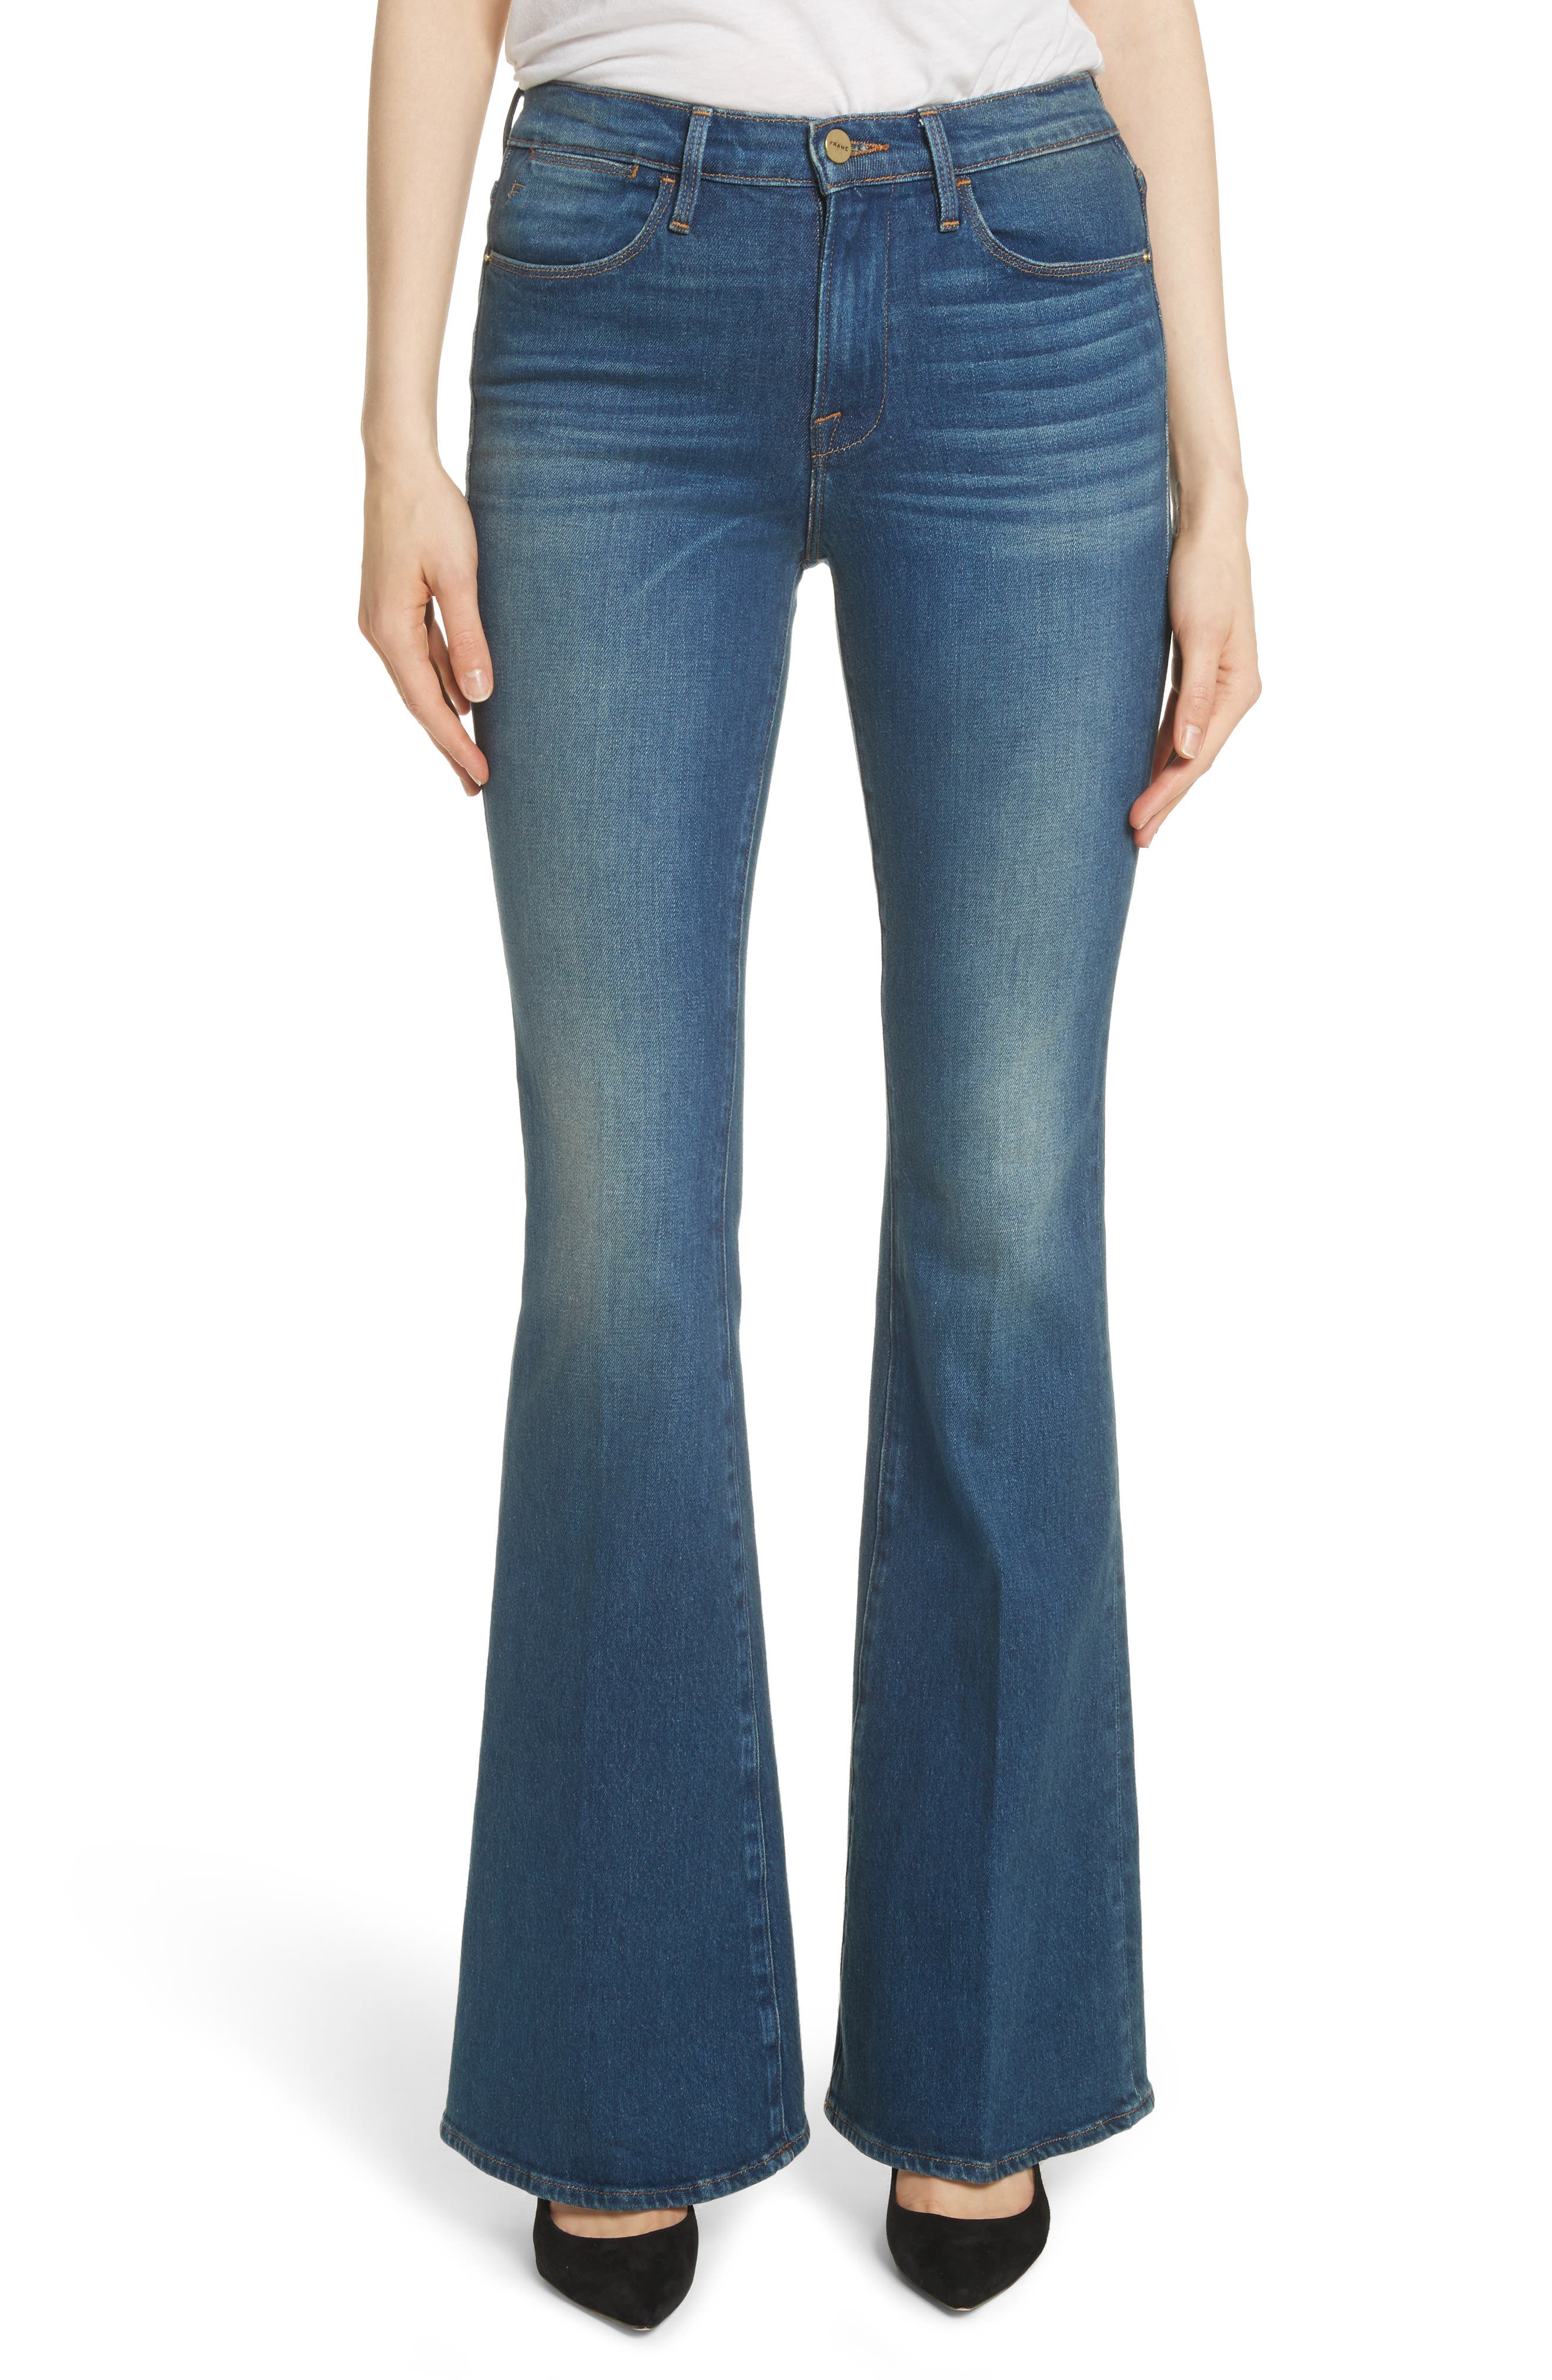 Le High Flare Jeans,                             Main thumbnail 1, color,                             Aldwoth